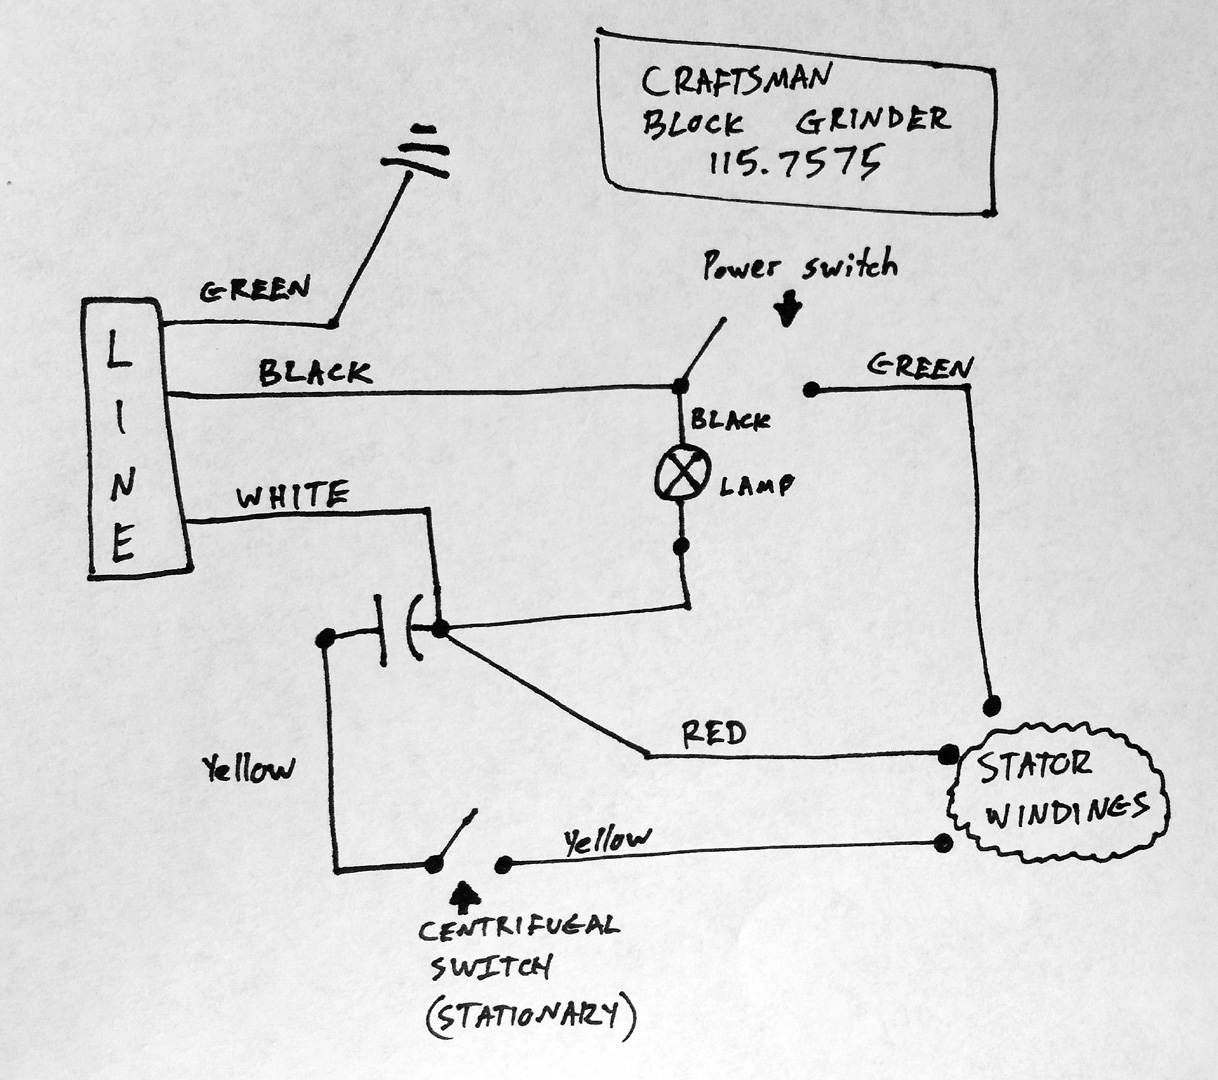 grinder_cm_1157575_01_elec2 craftsman 115 7575 pre block grinder restoration [part 4 grinder pump wiring diagram at soozxer.org